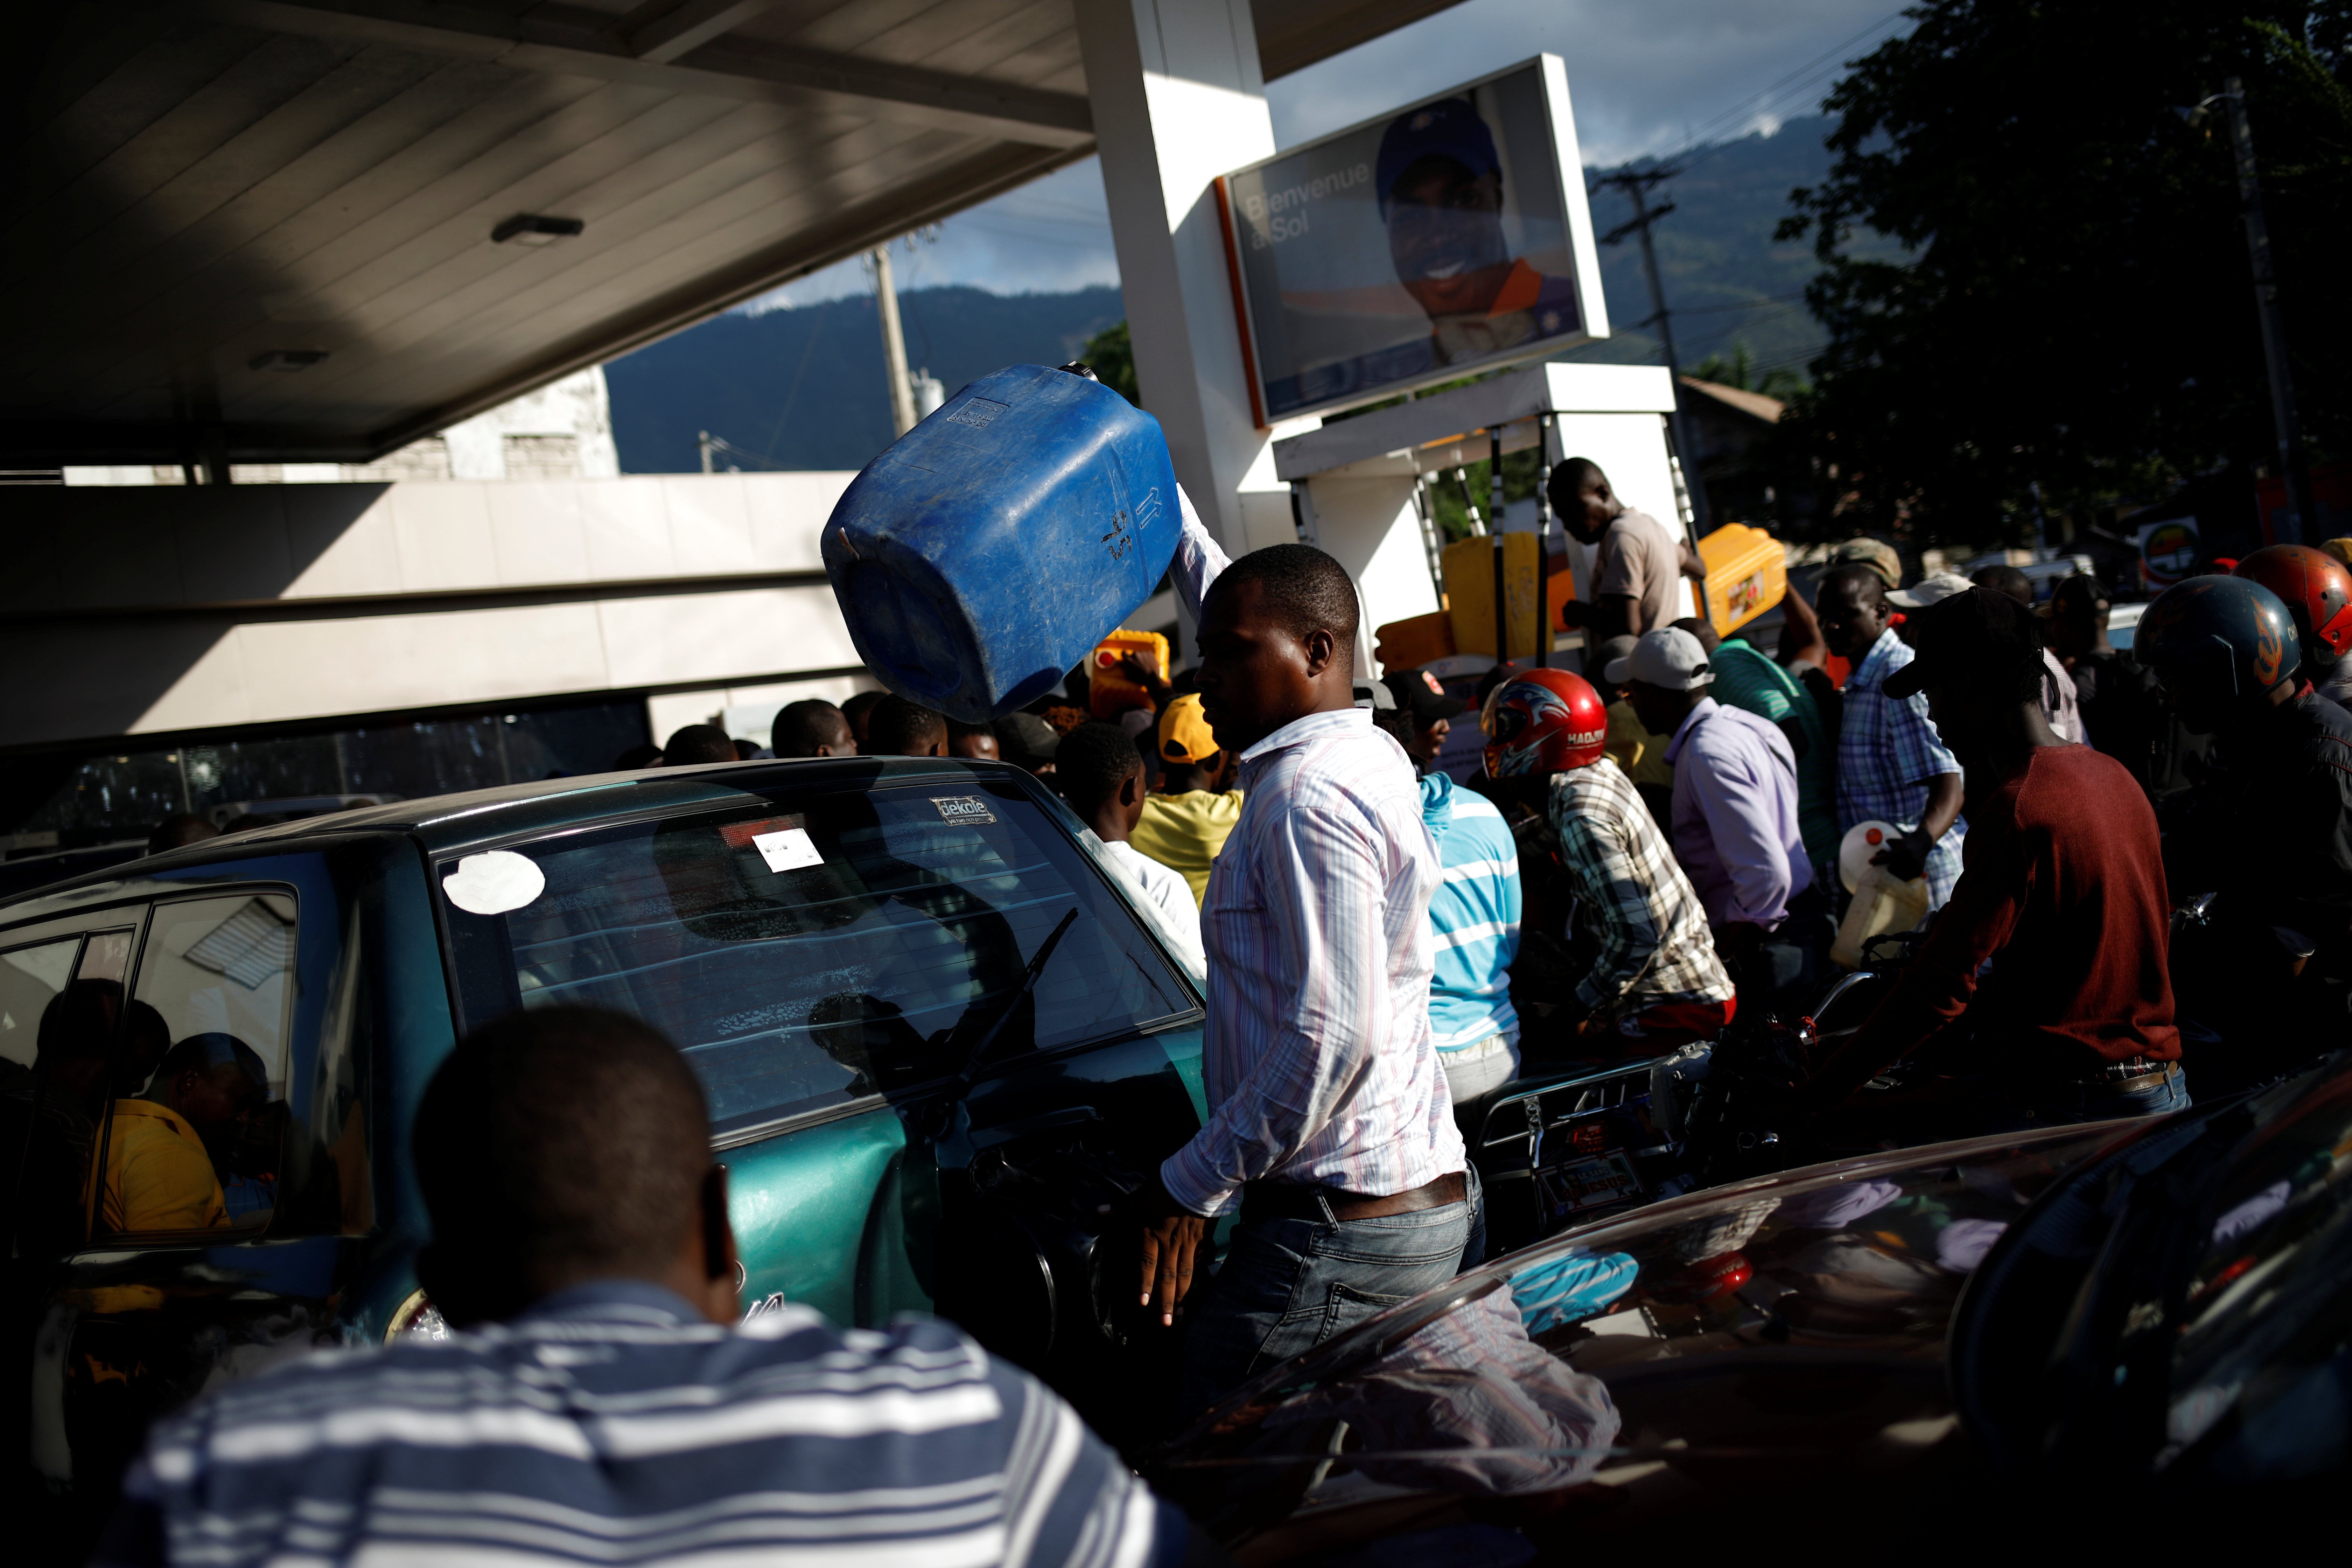 Motorbike riders and car drivers wait to get fuel at a gas station in Port-au-Prince, Haiti, April 4, 2019.